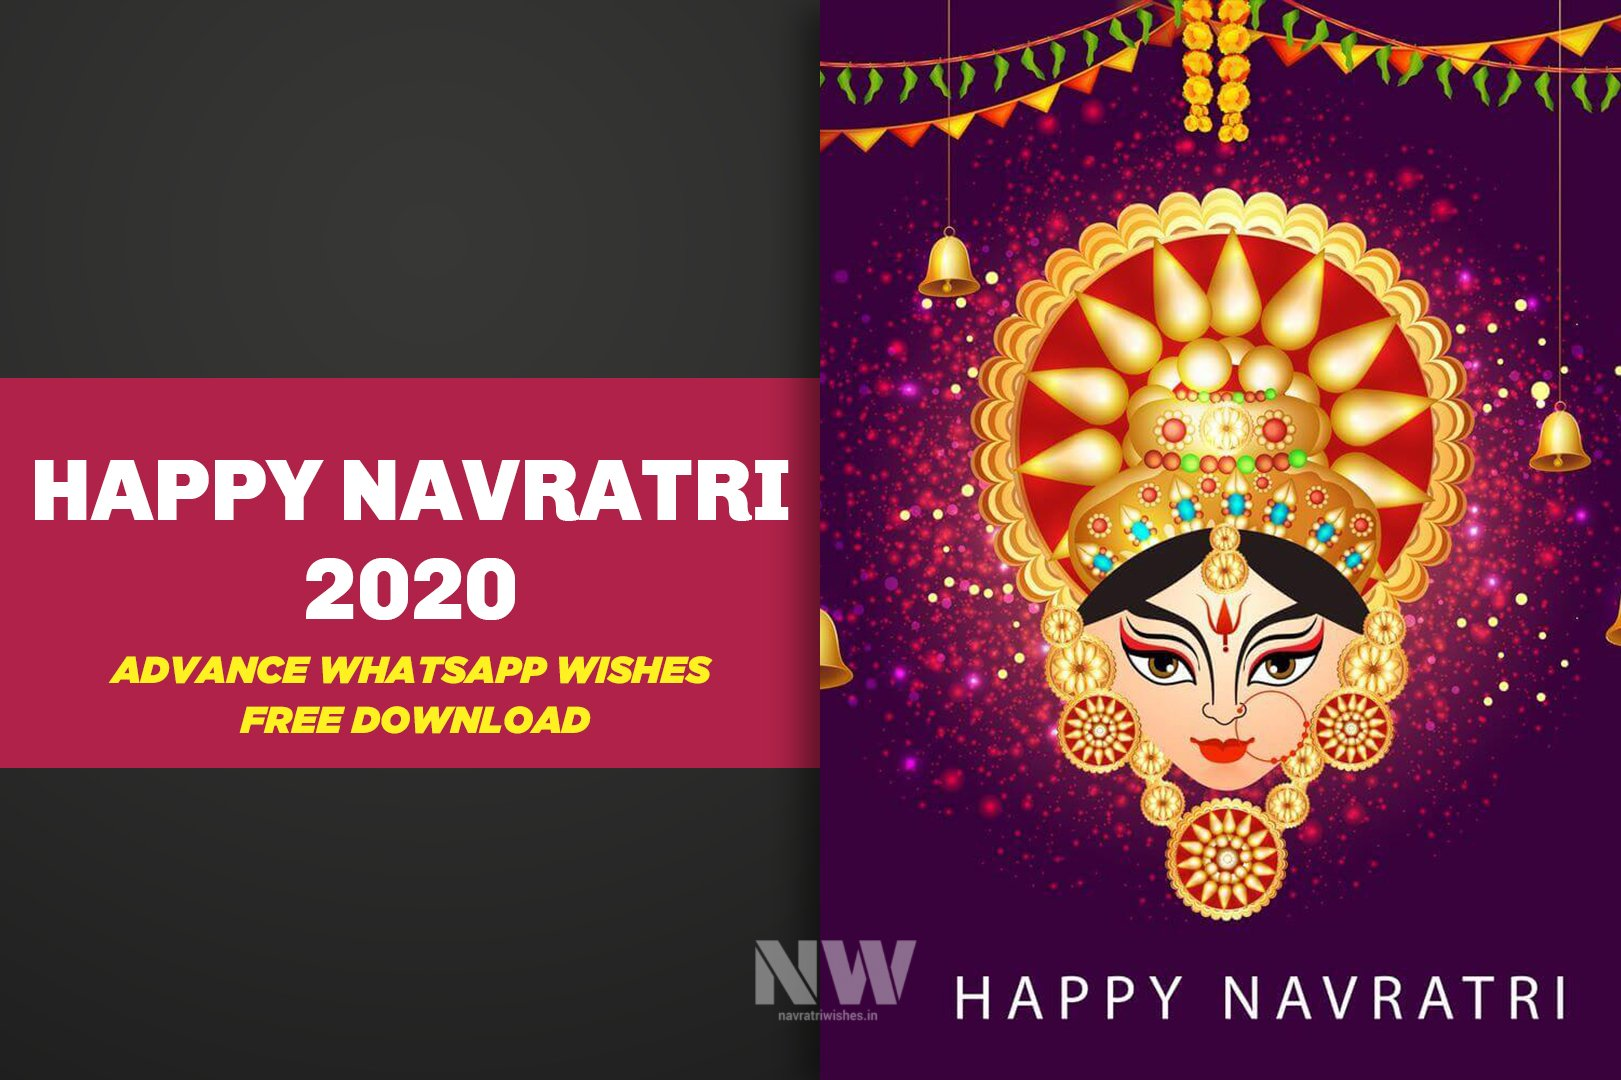 happy-navratri-2020-advance-wishes-whatsapp-image-free-download